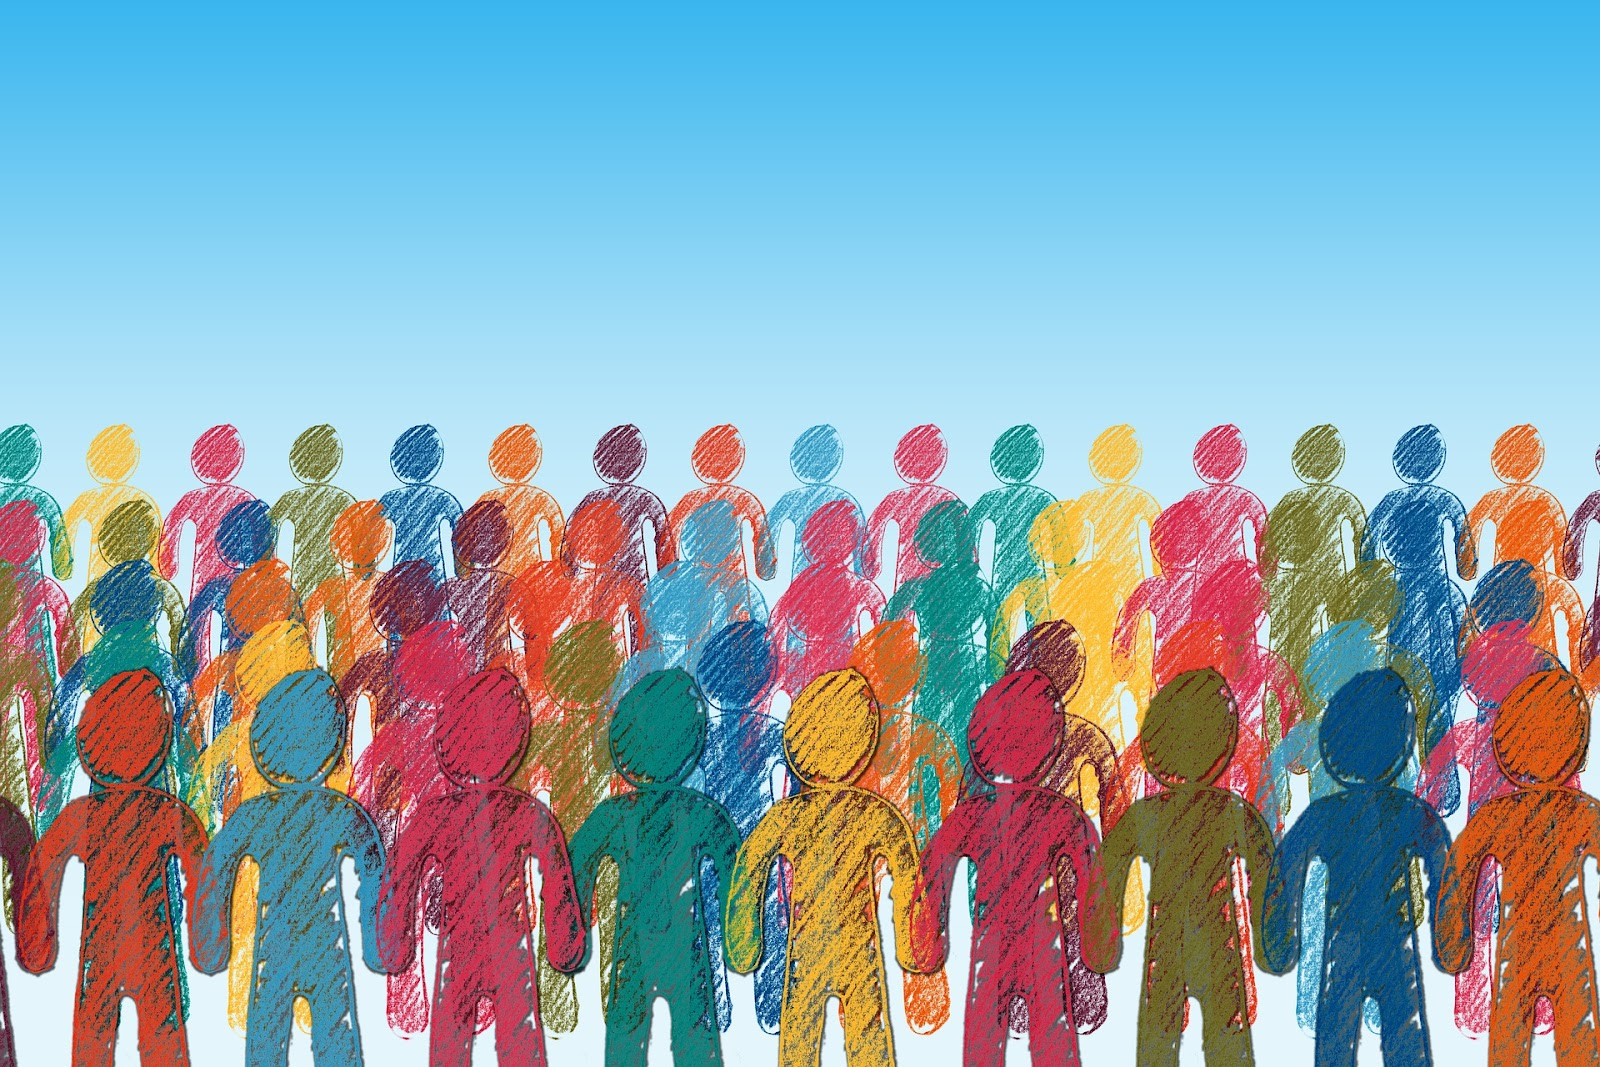 A crowd of human outlines in a rainbow of colors.